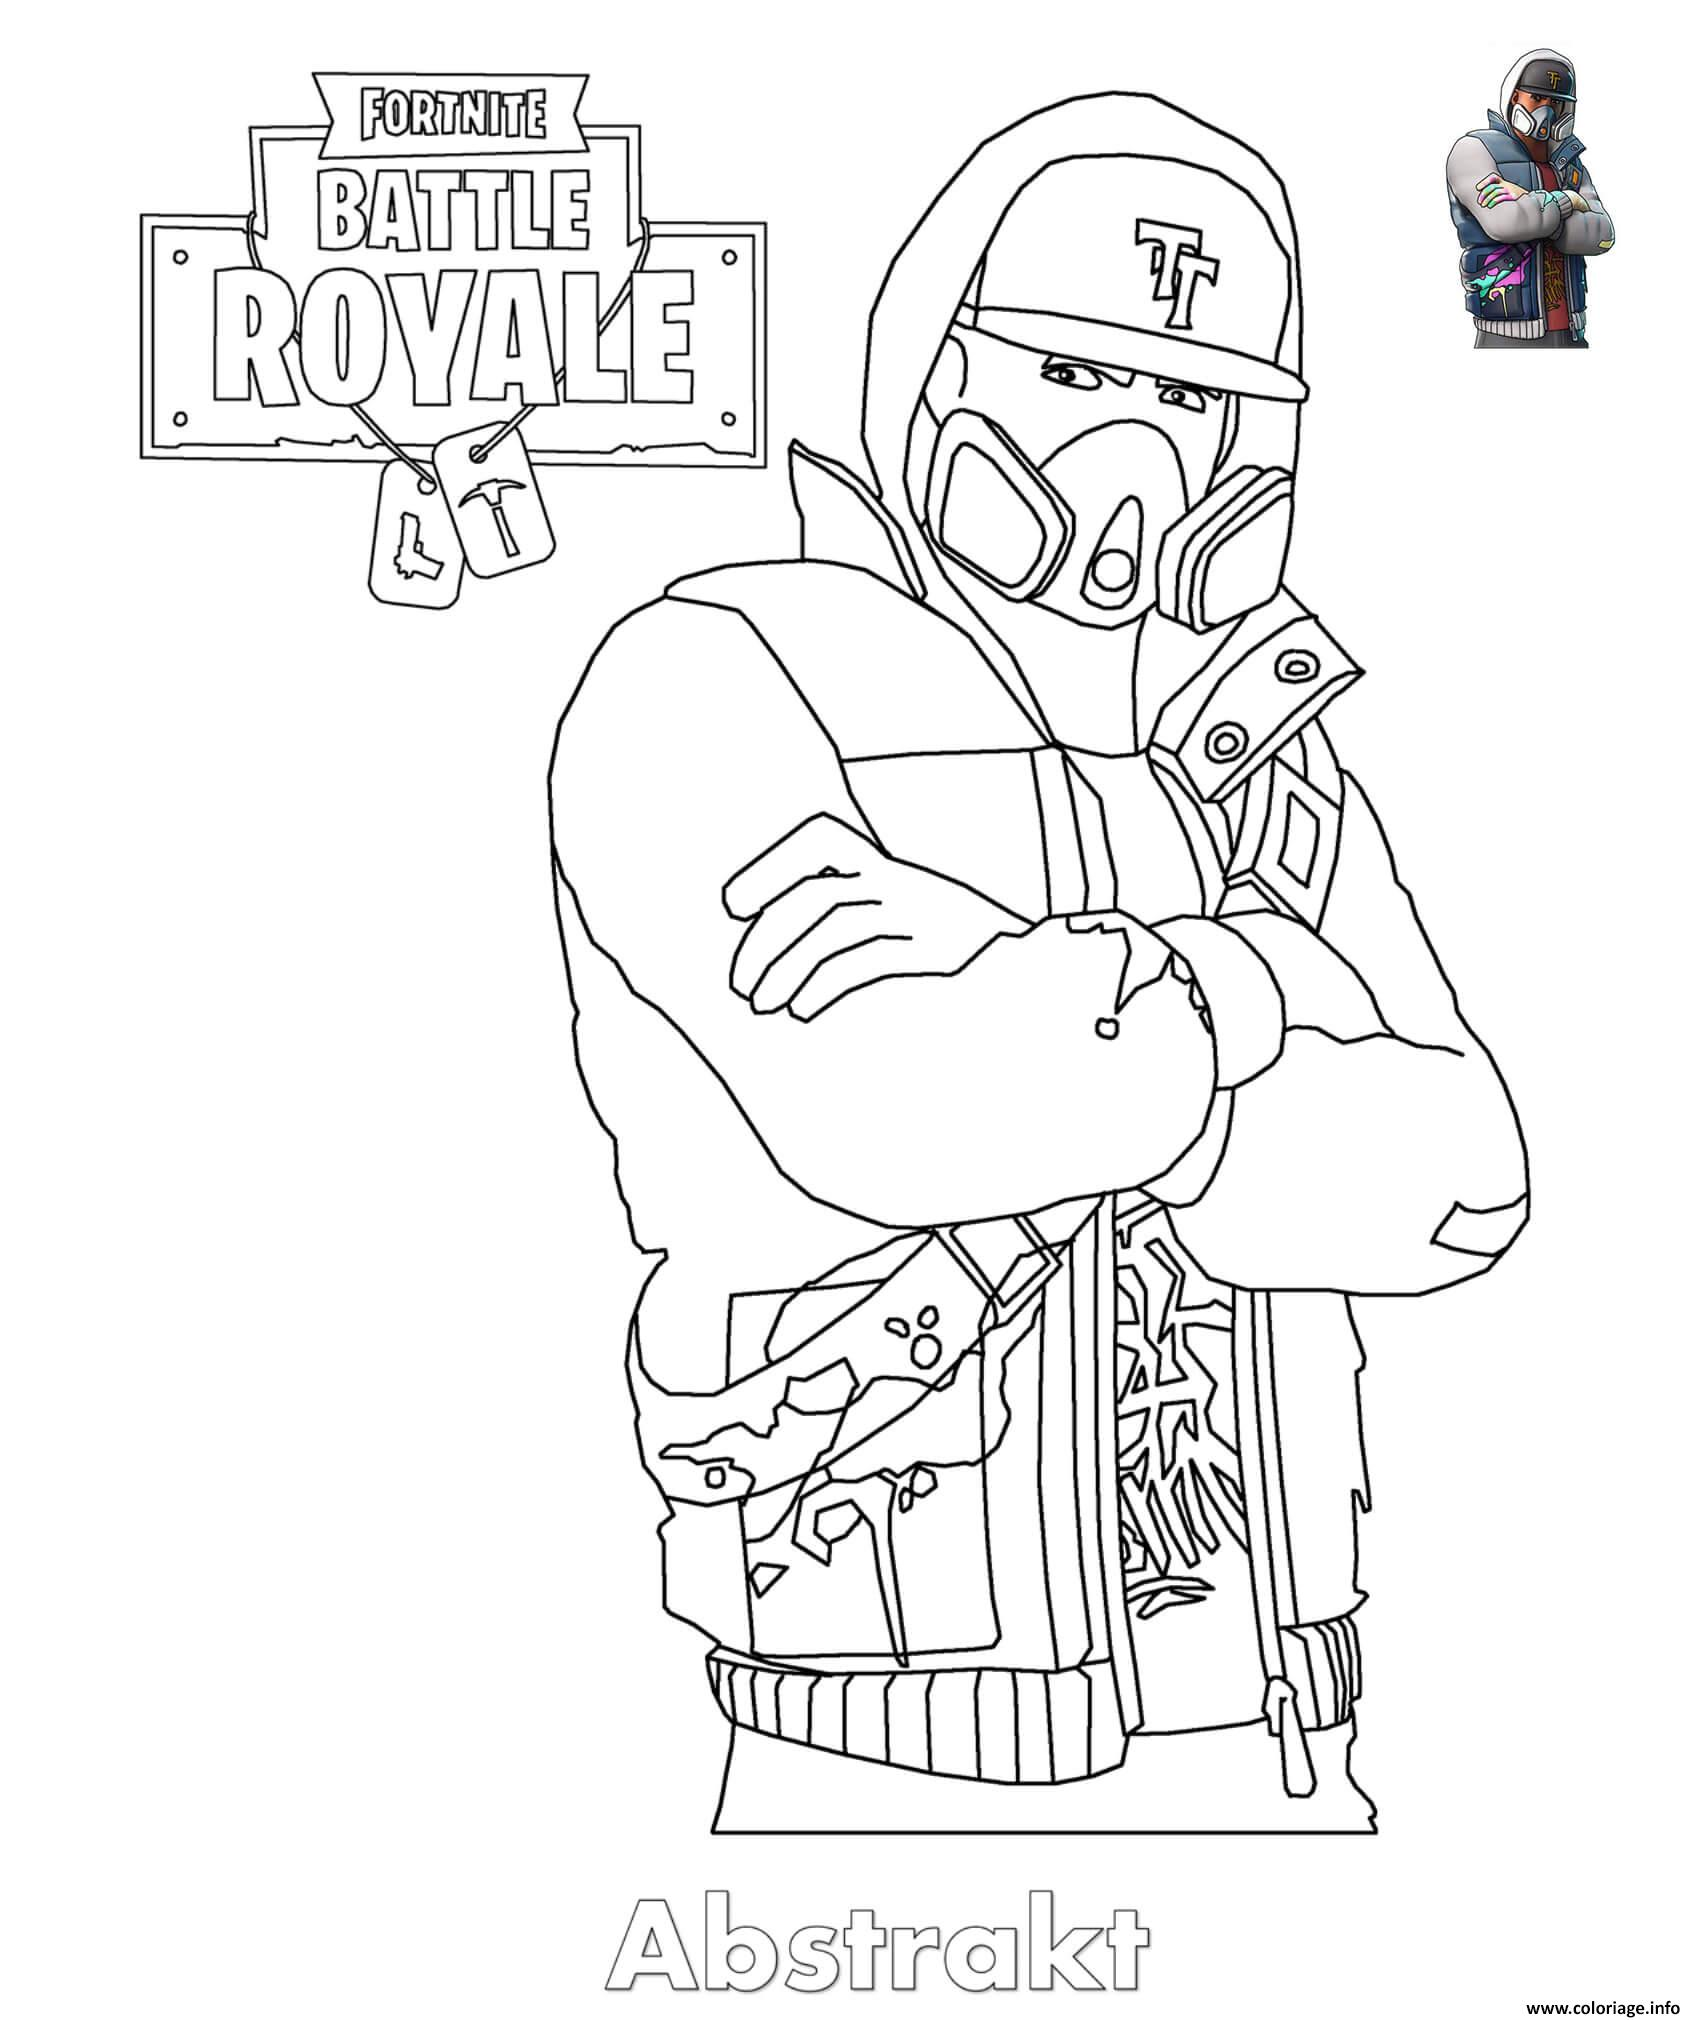 roche lego coloring pages - photo#14